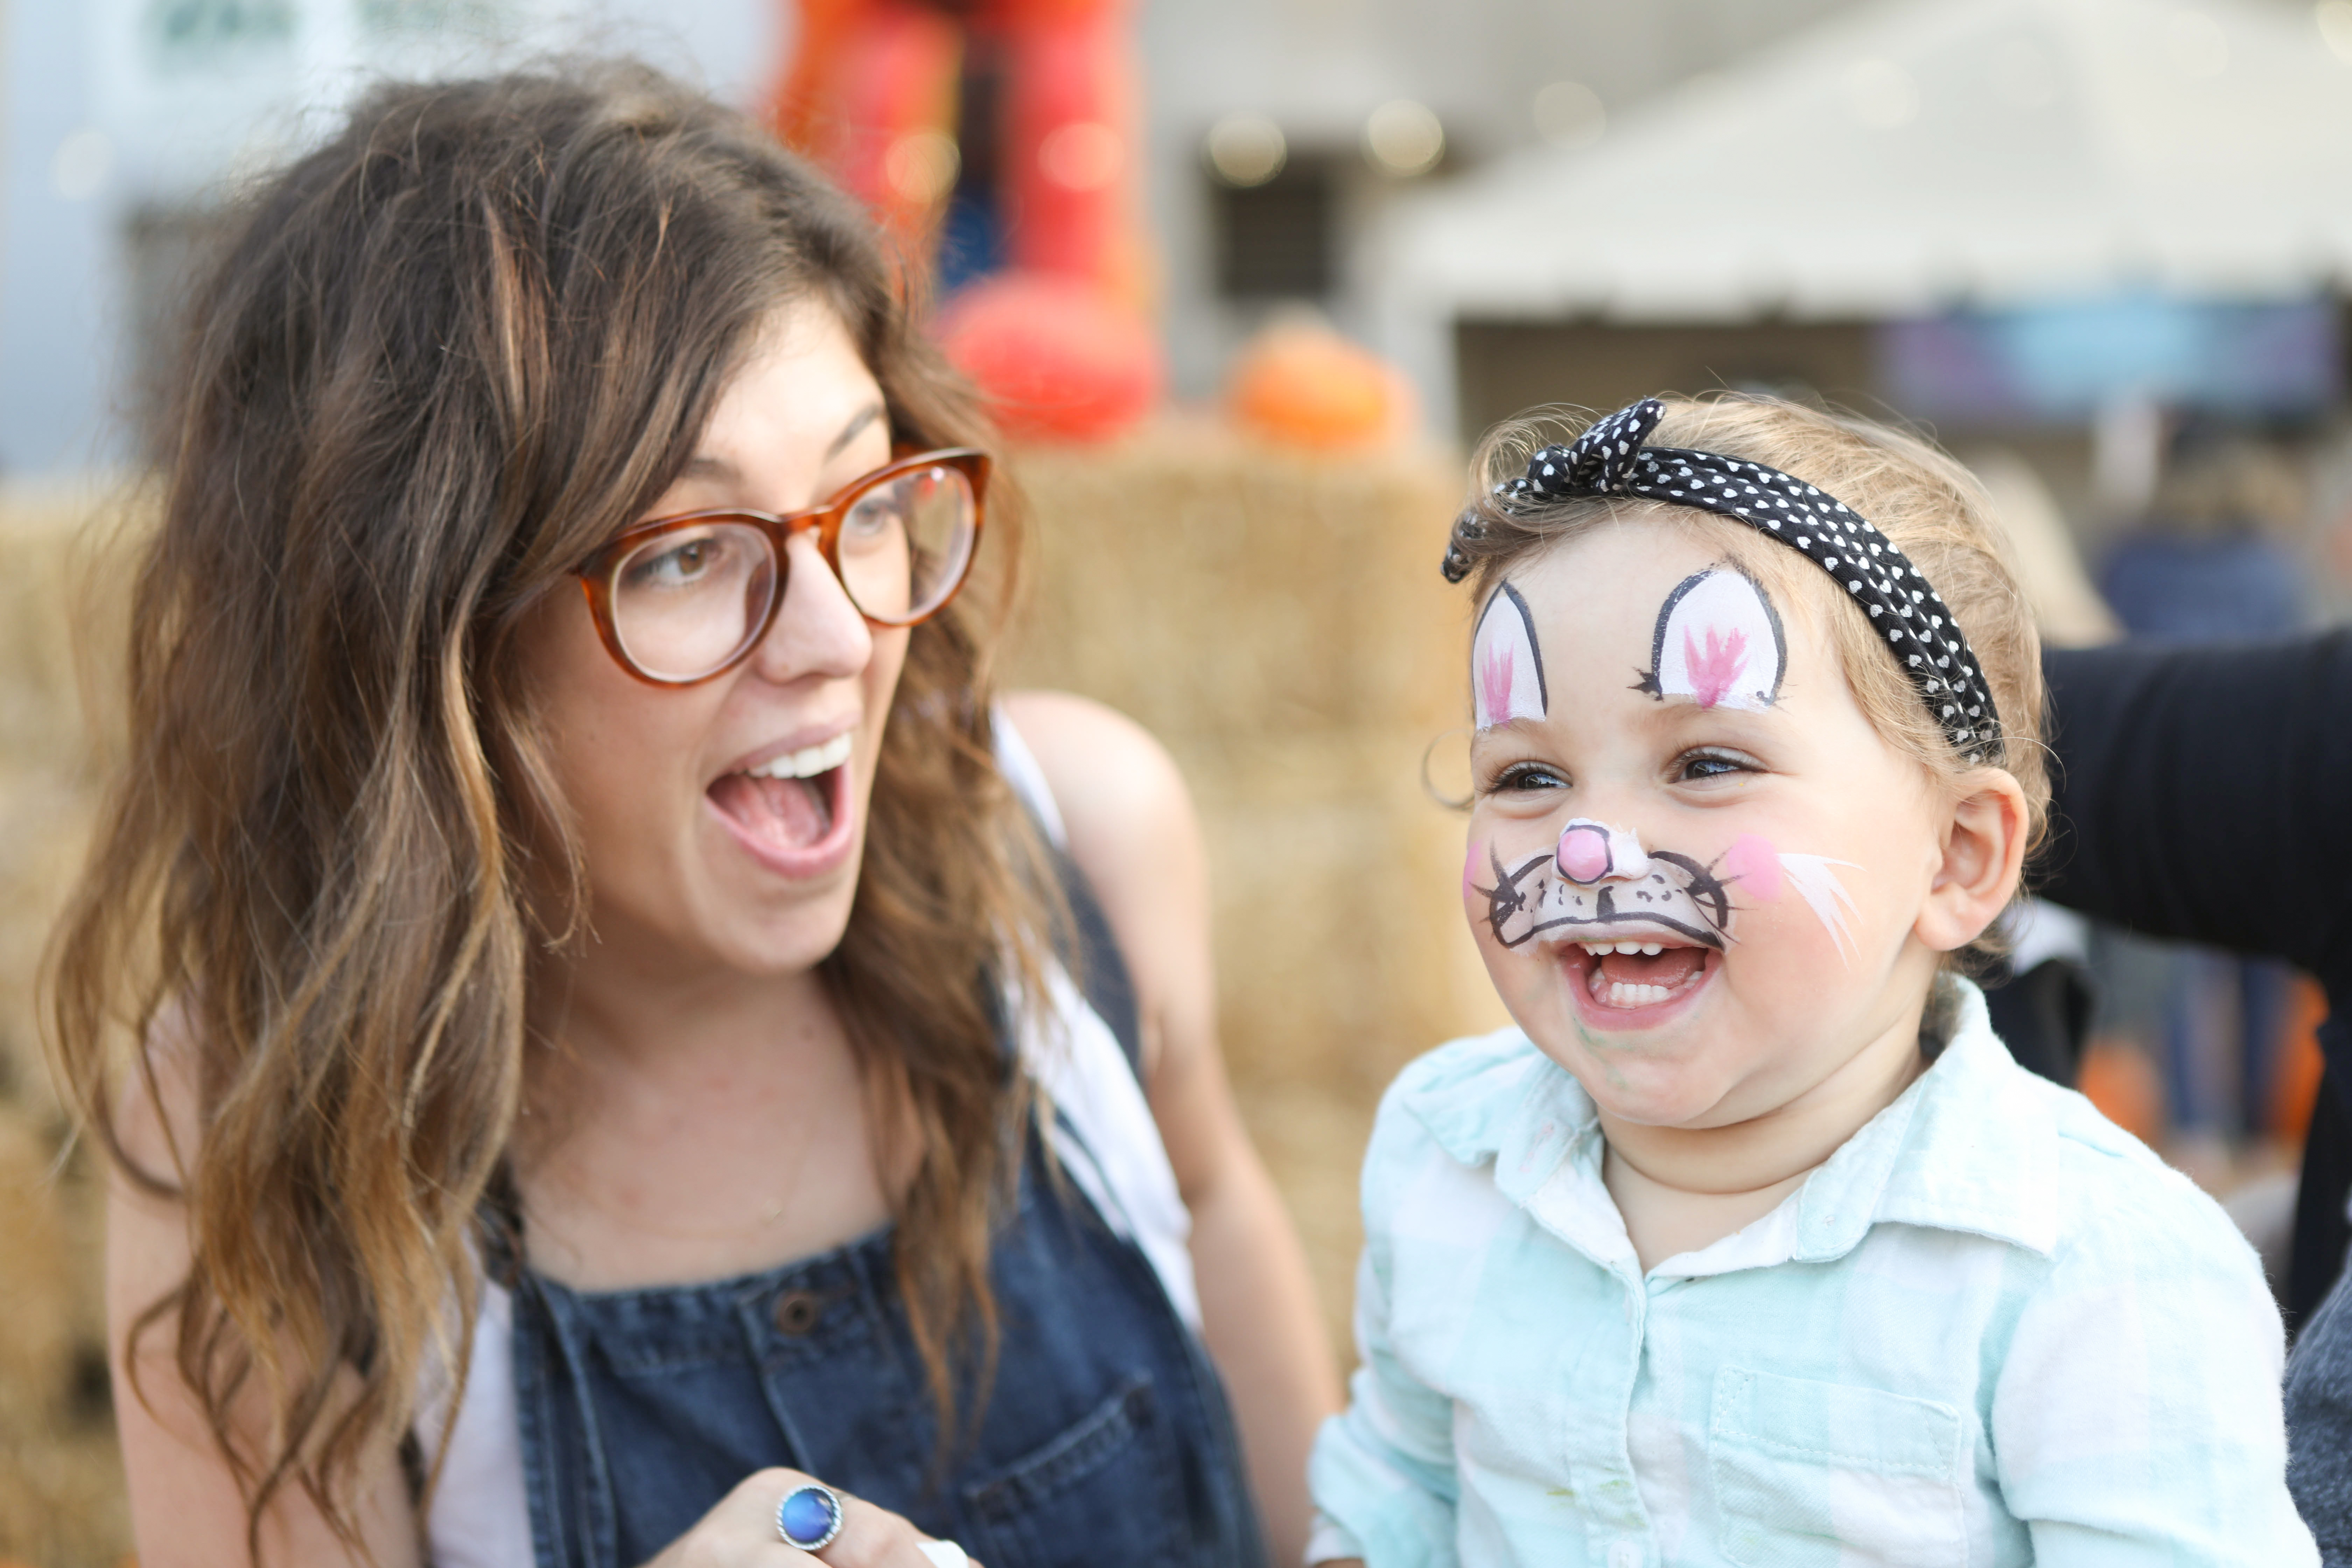 Young woman with child in cute makeup